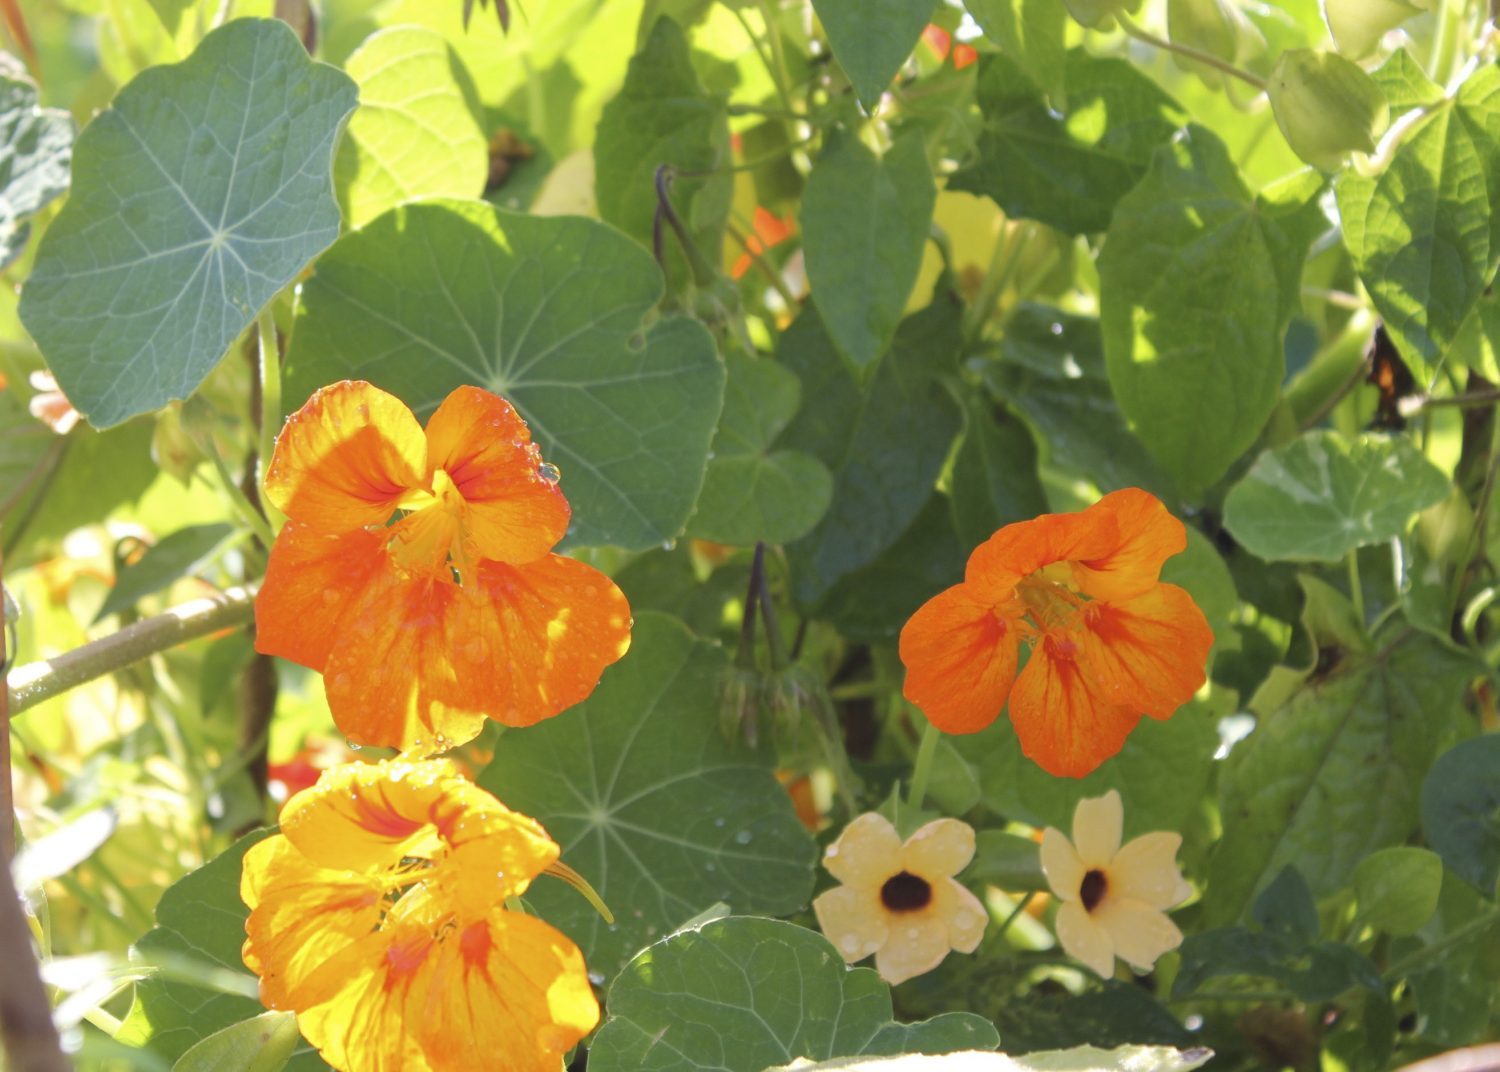 Nasturtiums in their caterpillar-free glory